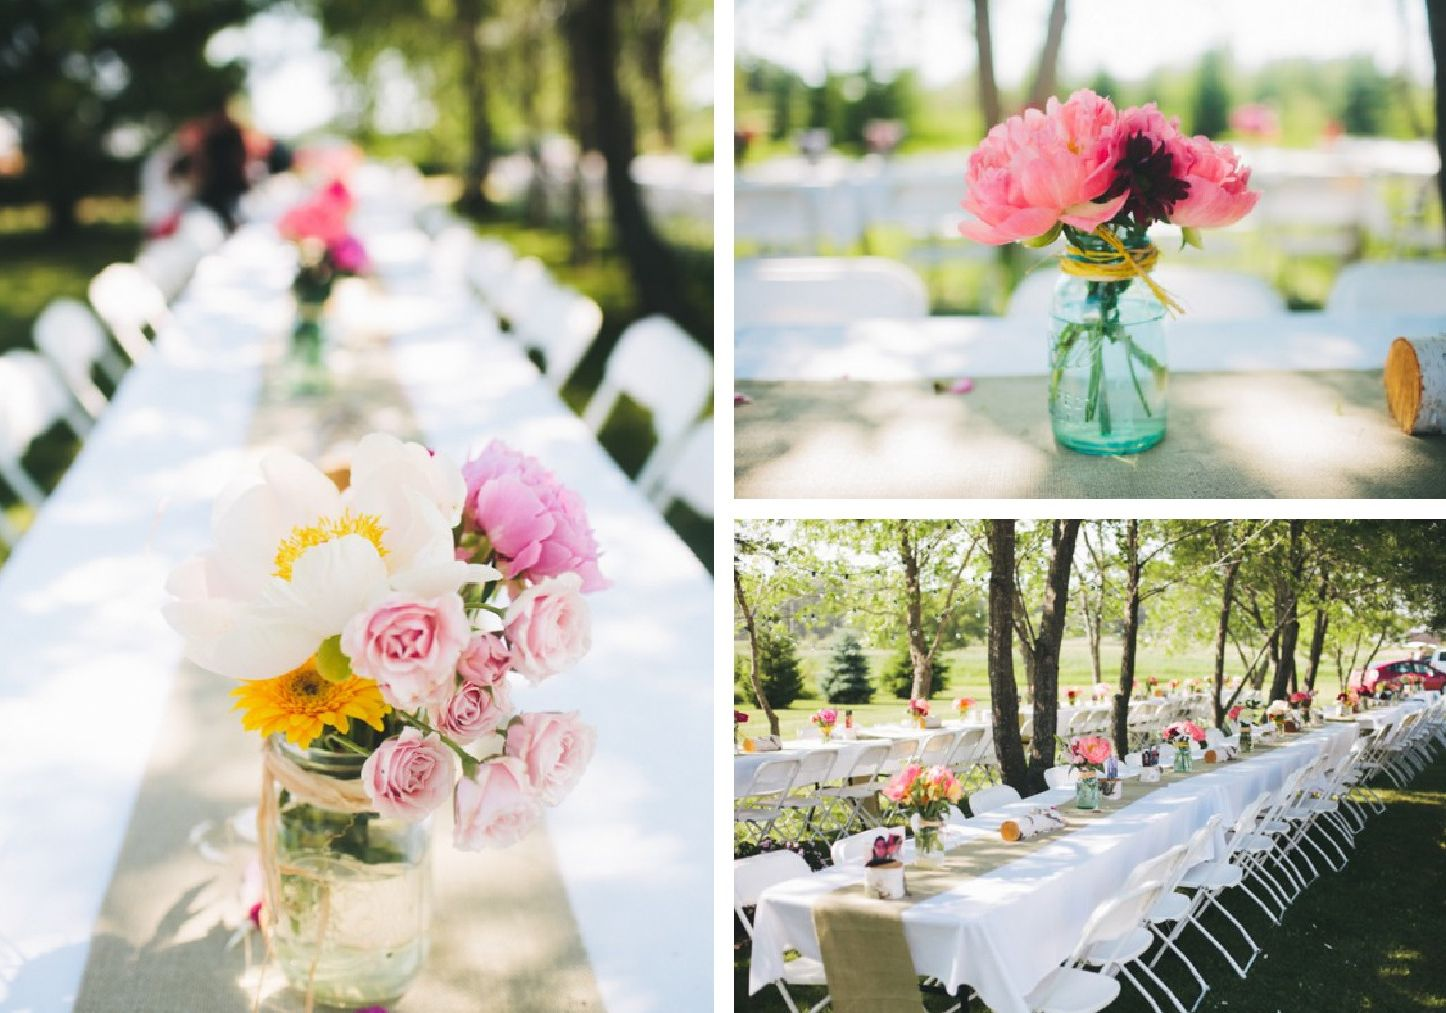 decoration-outdoor-rustic-wedding-centerpiece